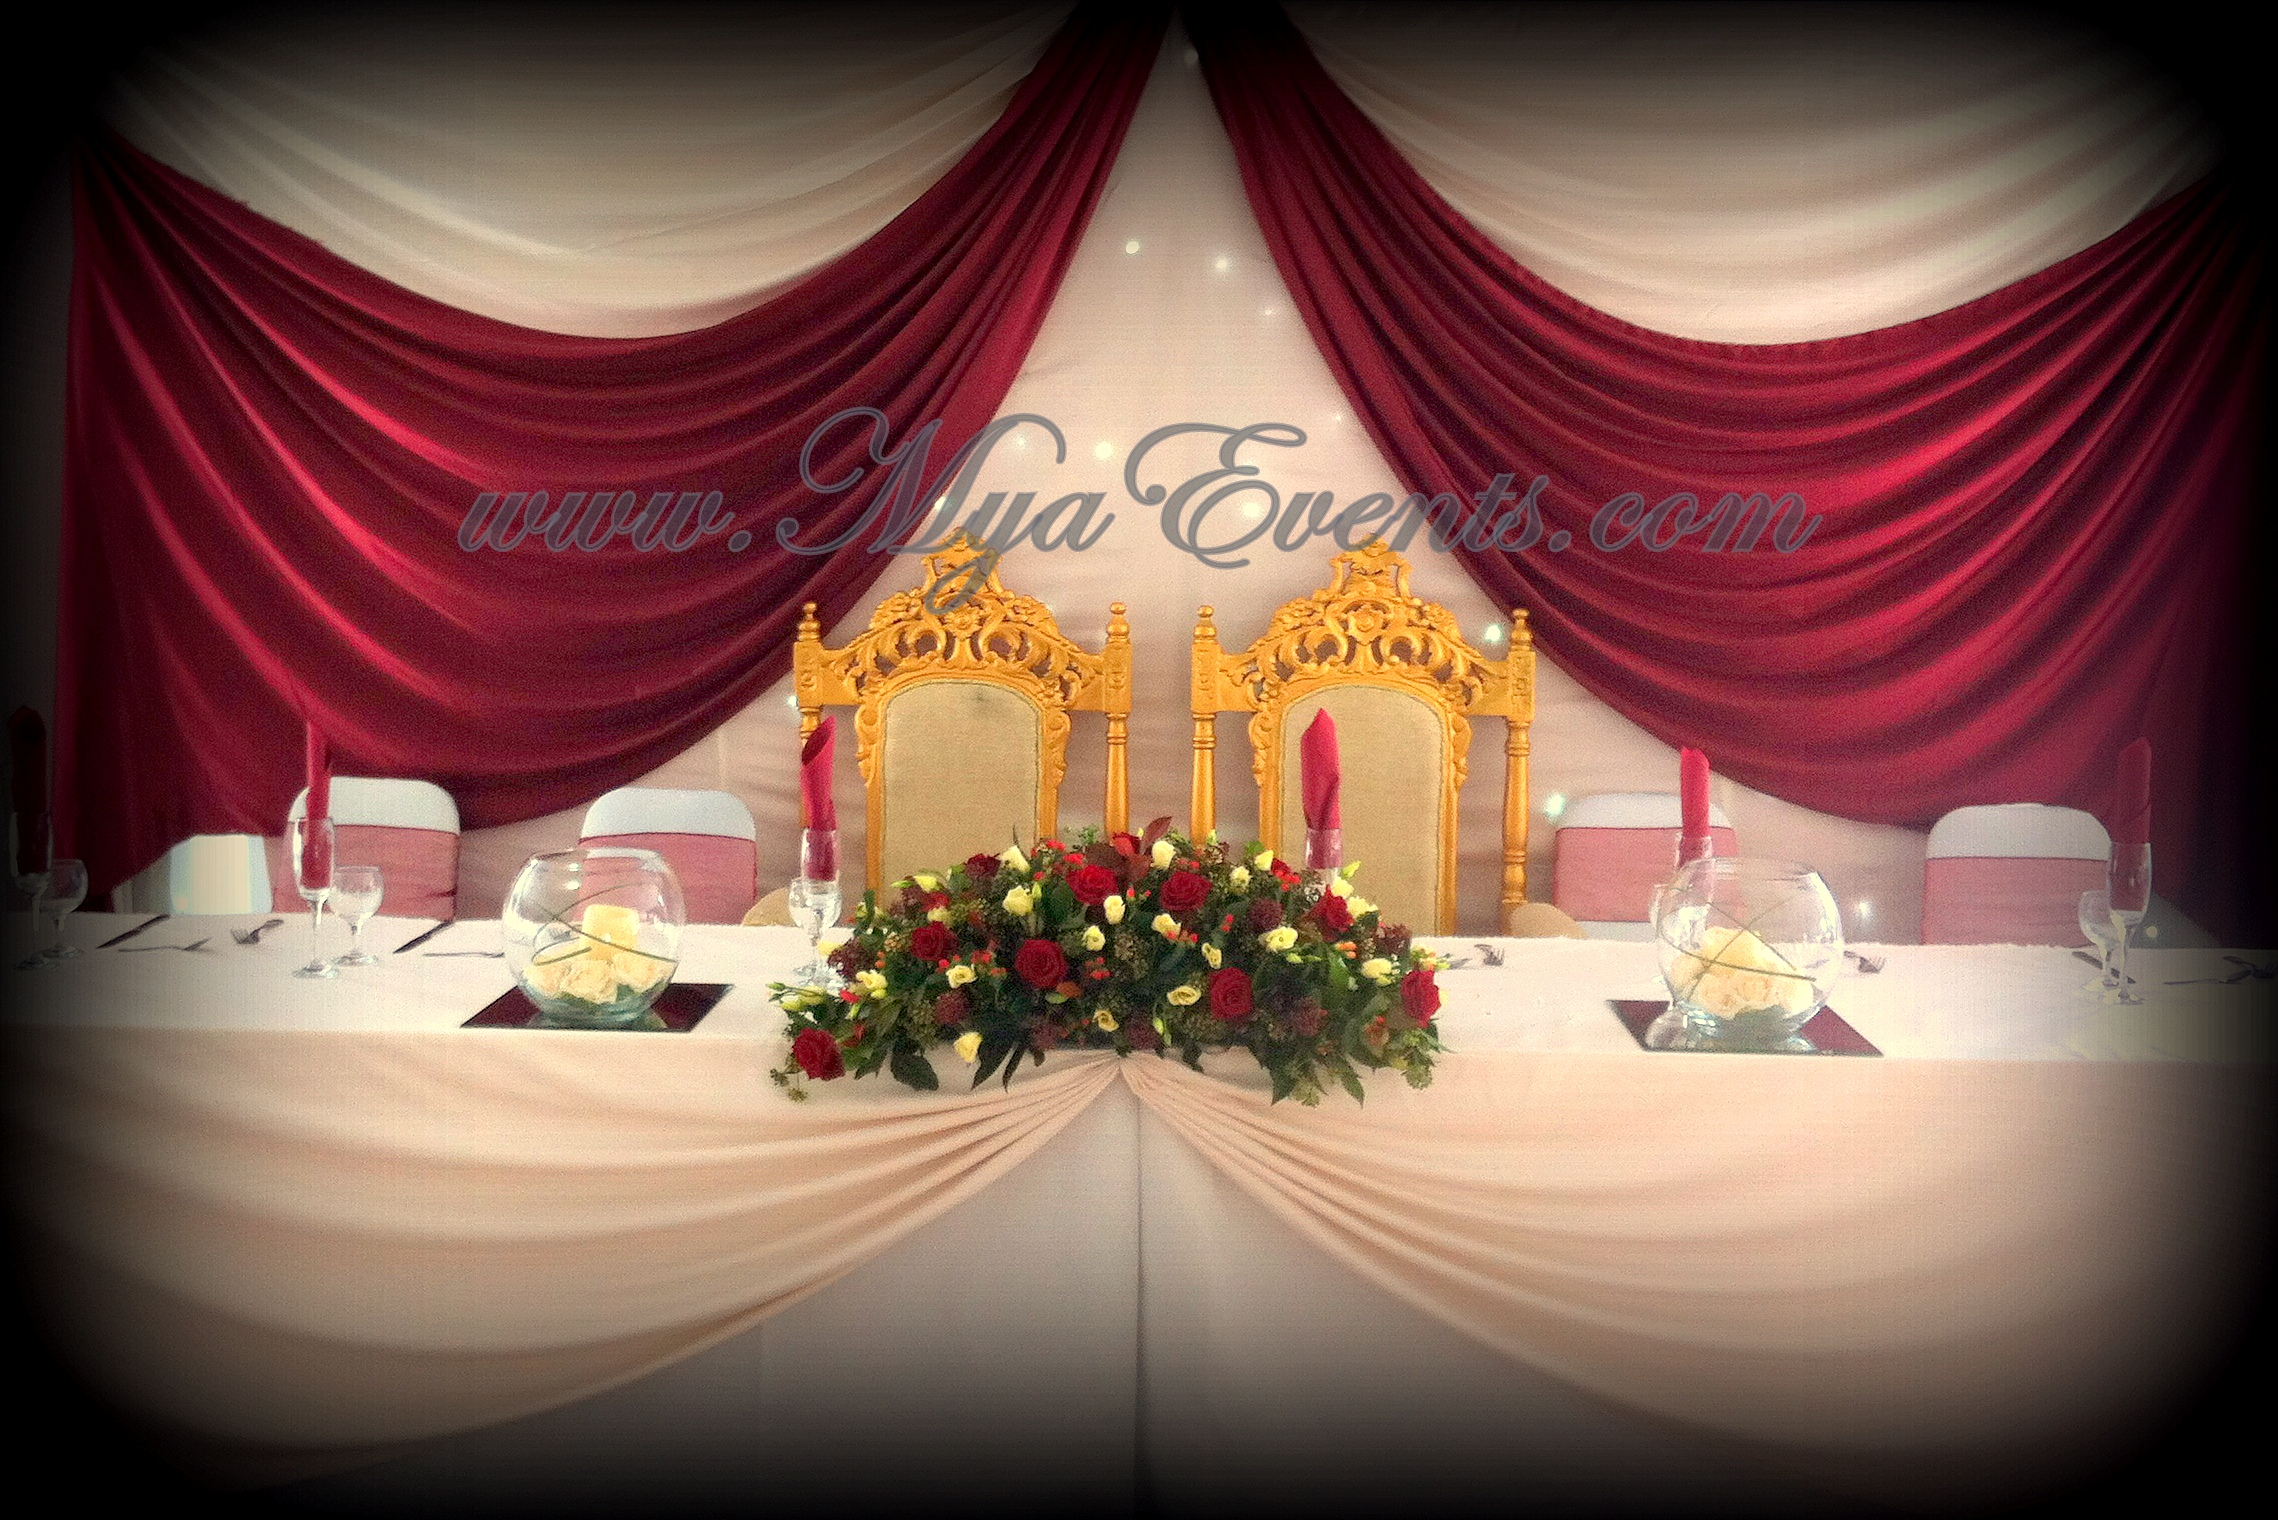 Throne chair hire london 199 wedding throne chair for Cheap wedding decoration packages